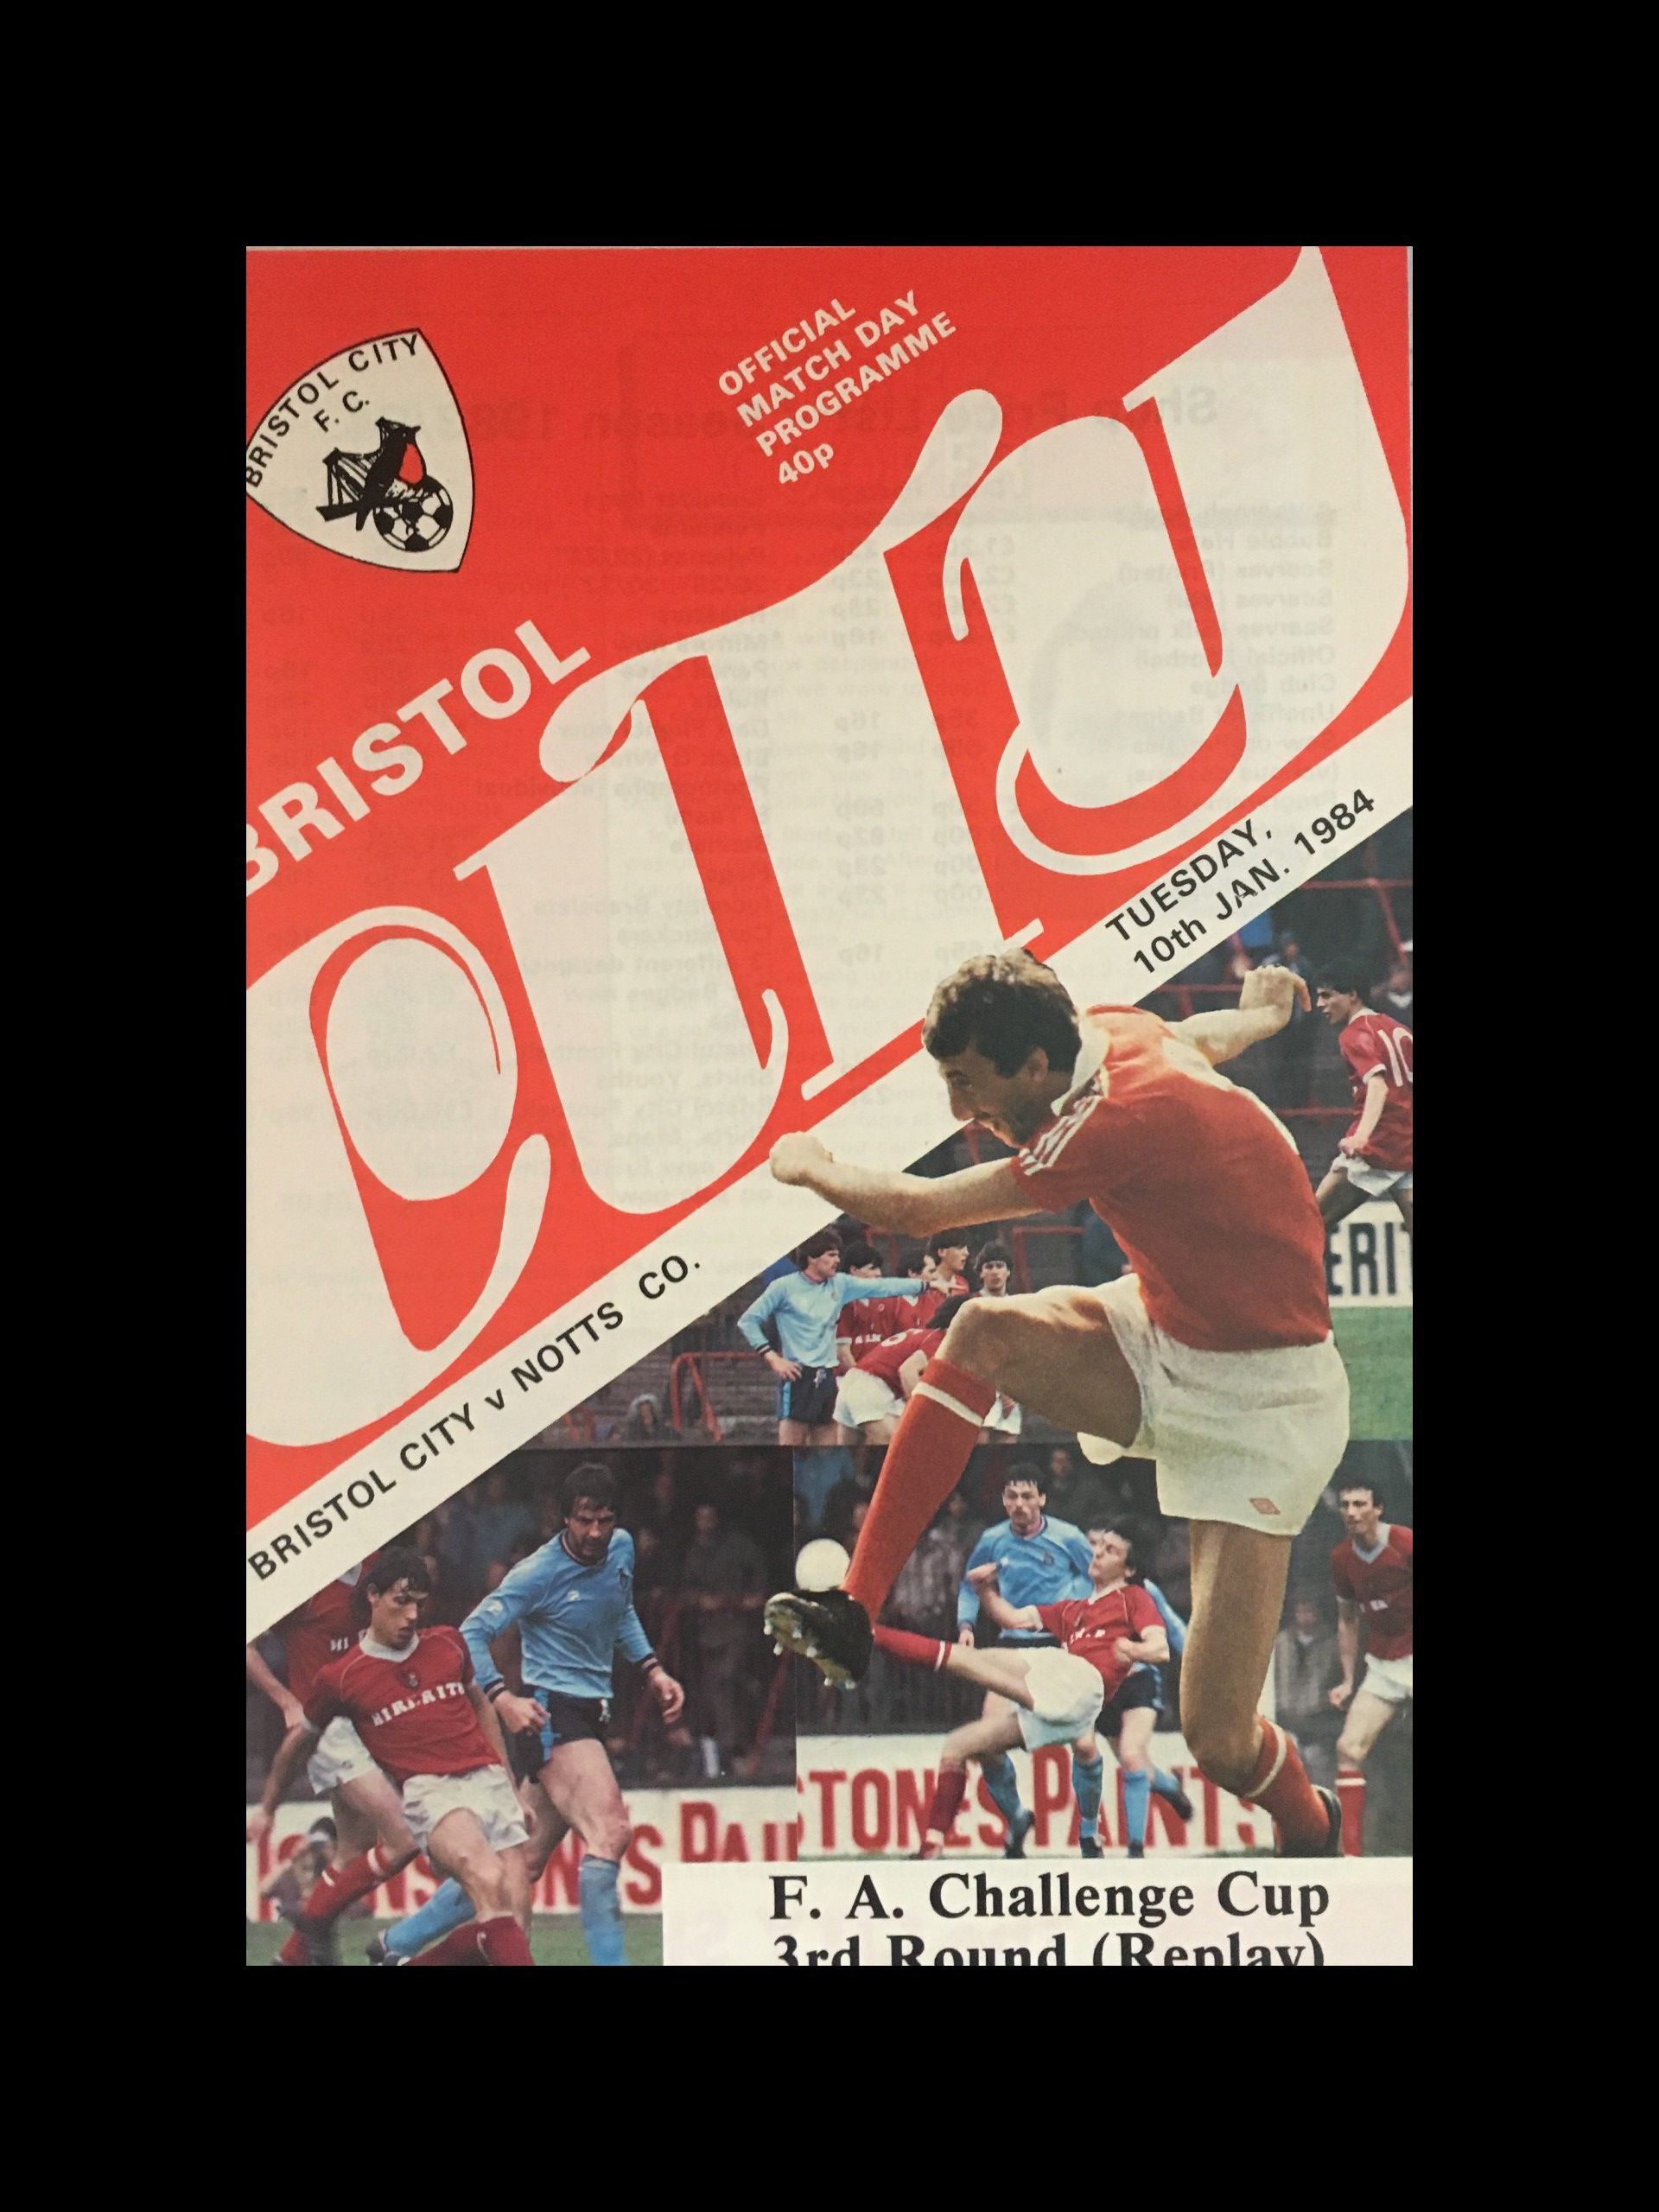 Bristol City v Notts County 10-01-84 Programme